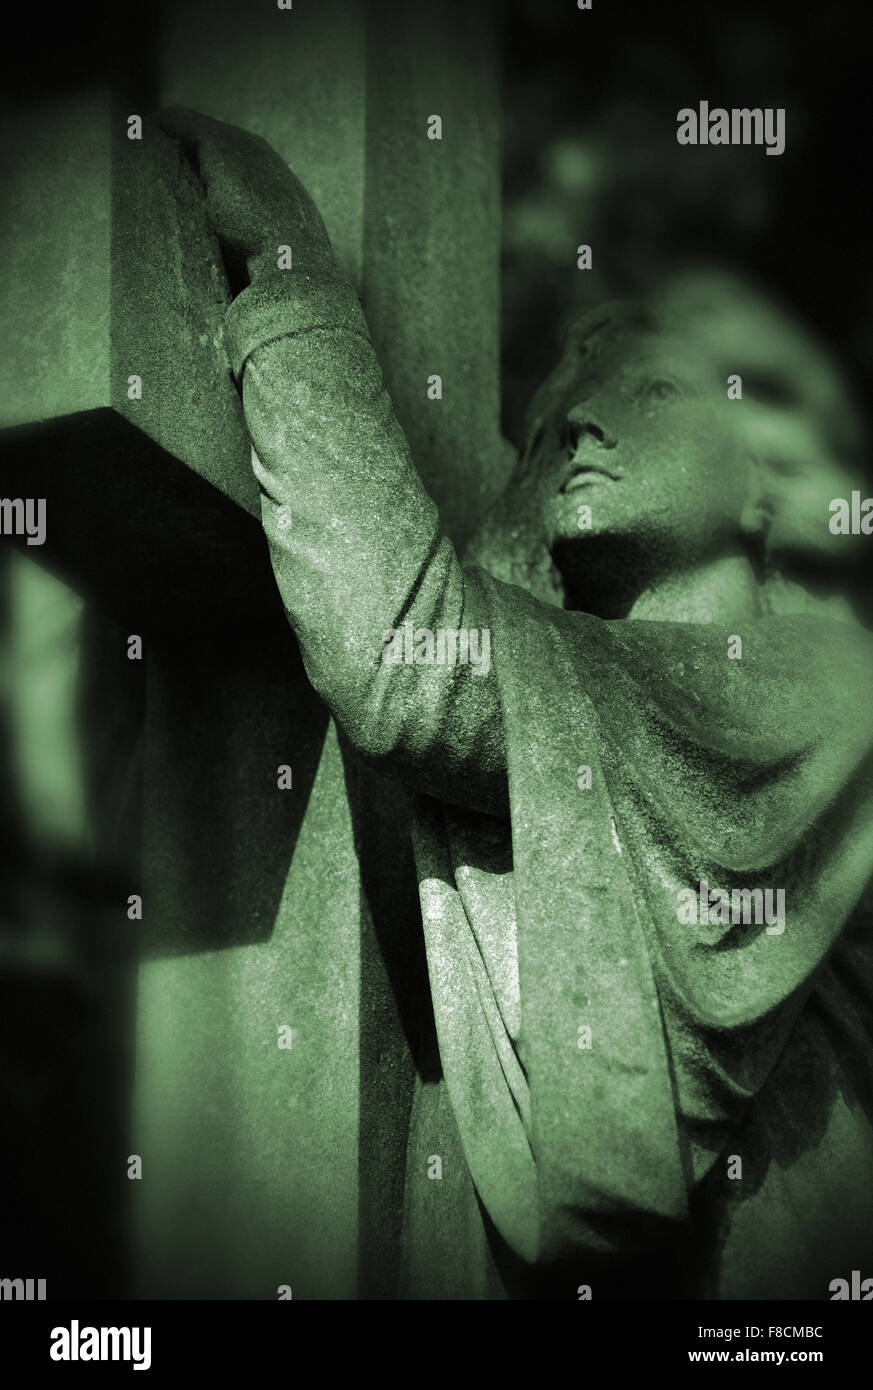 angel holding on to cross - Stock Image